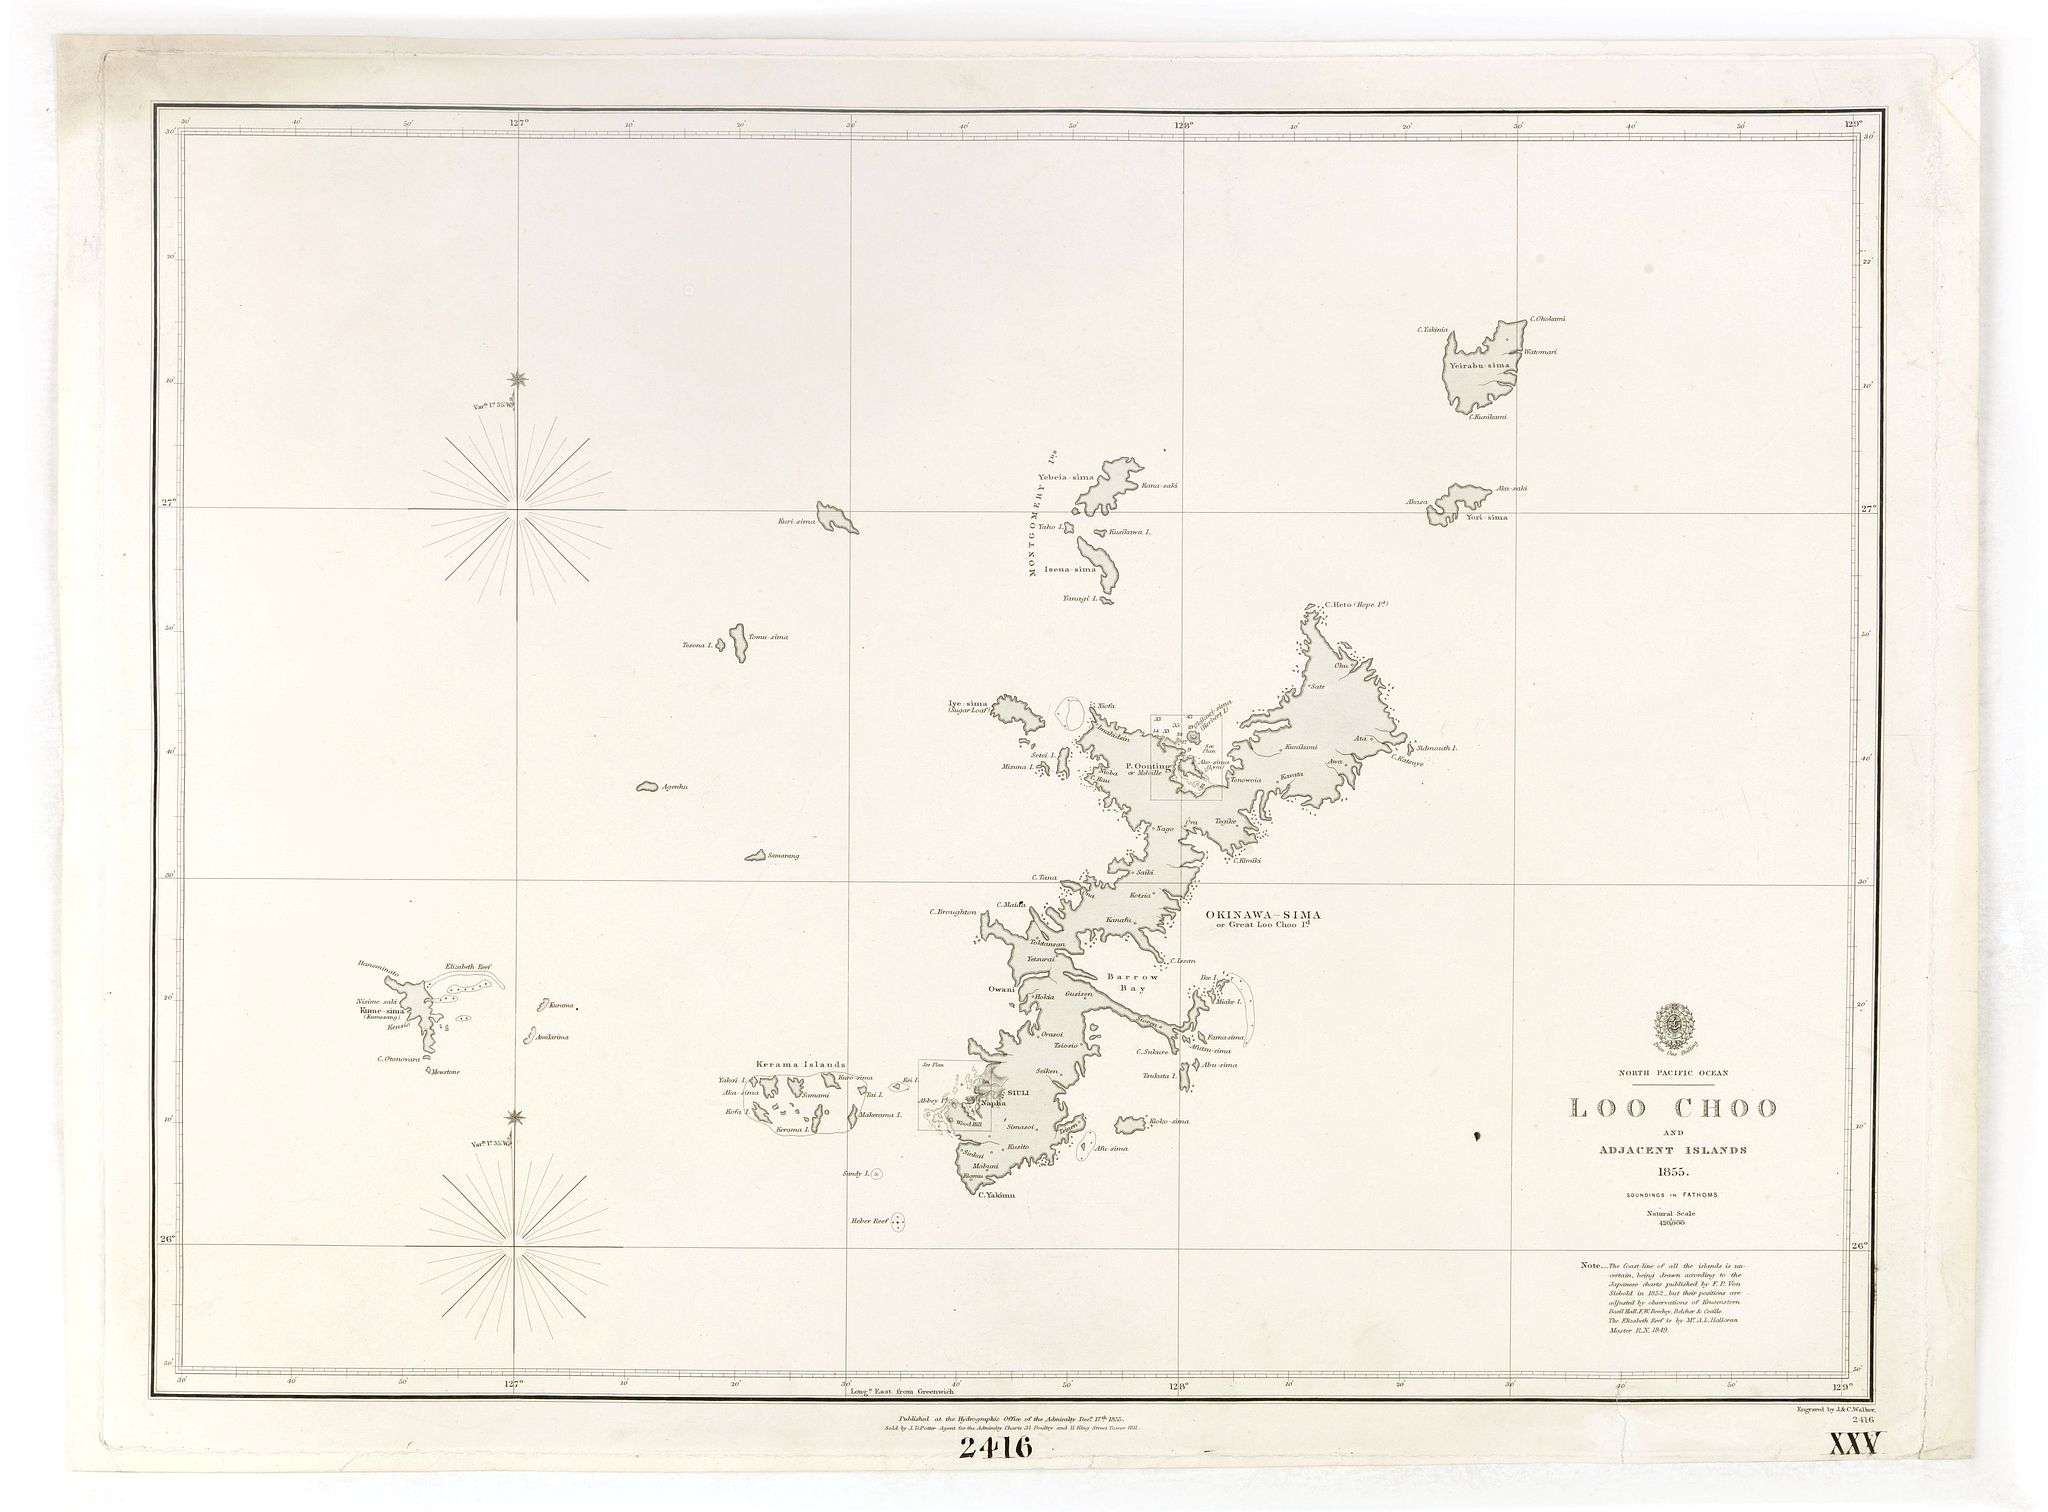 HYDROGRAPHIC OFFICE -  North Pacific Ocean LOO CHOO and adjacent Islands 1855.